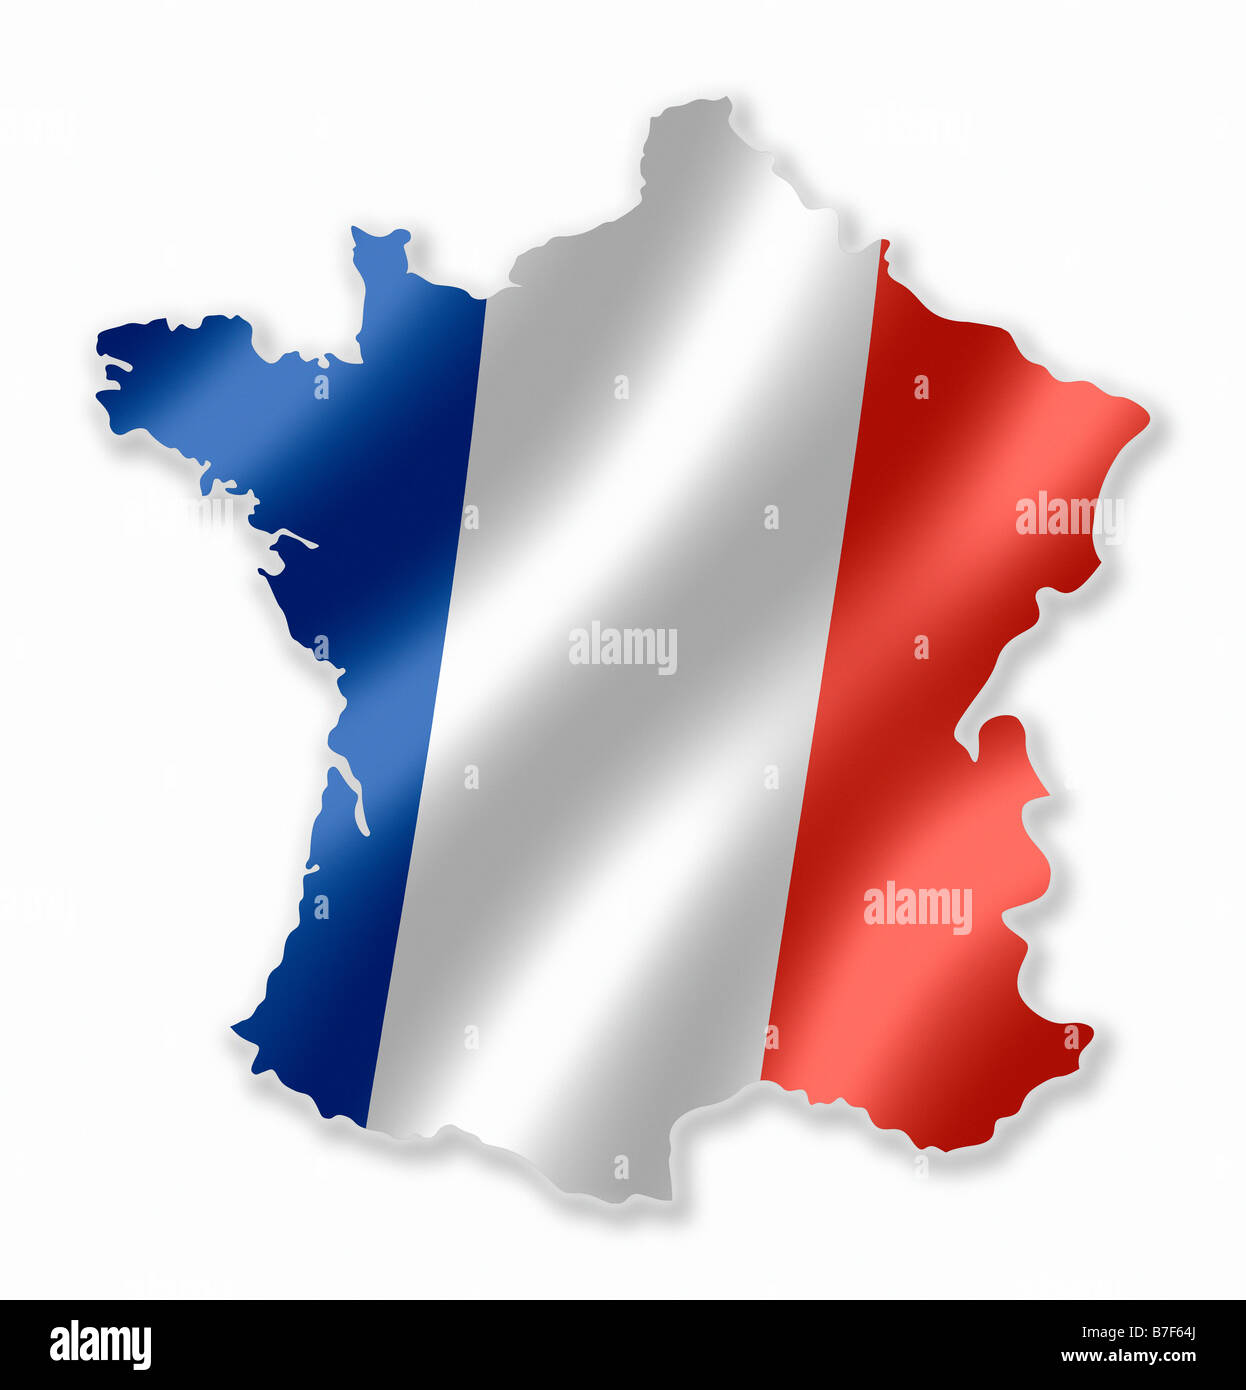 Outline Of French Country Wiring Diagrams Pierce Crystal Oscillator Circuit Diagram Tradeoficcom France Map With National Flag Inside Stock Rh Alamy Com China India